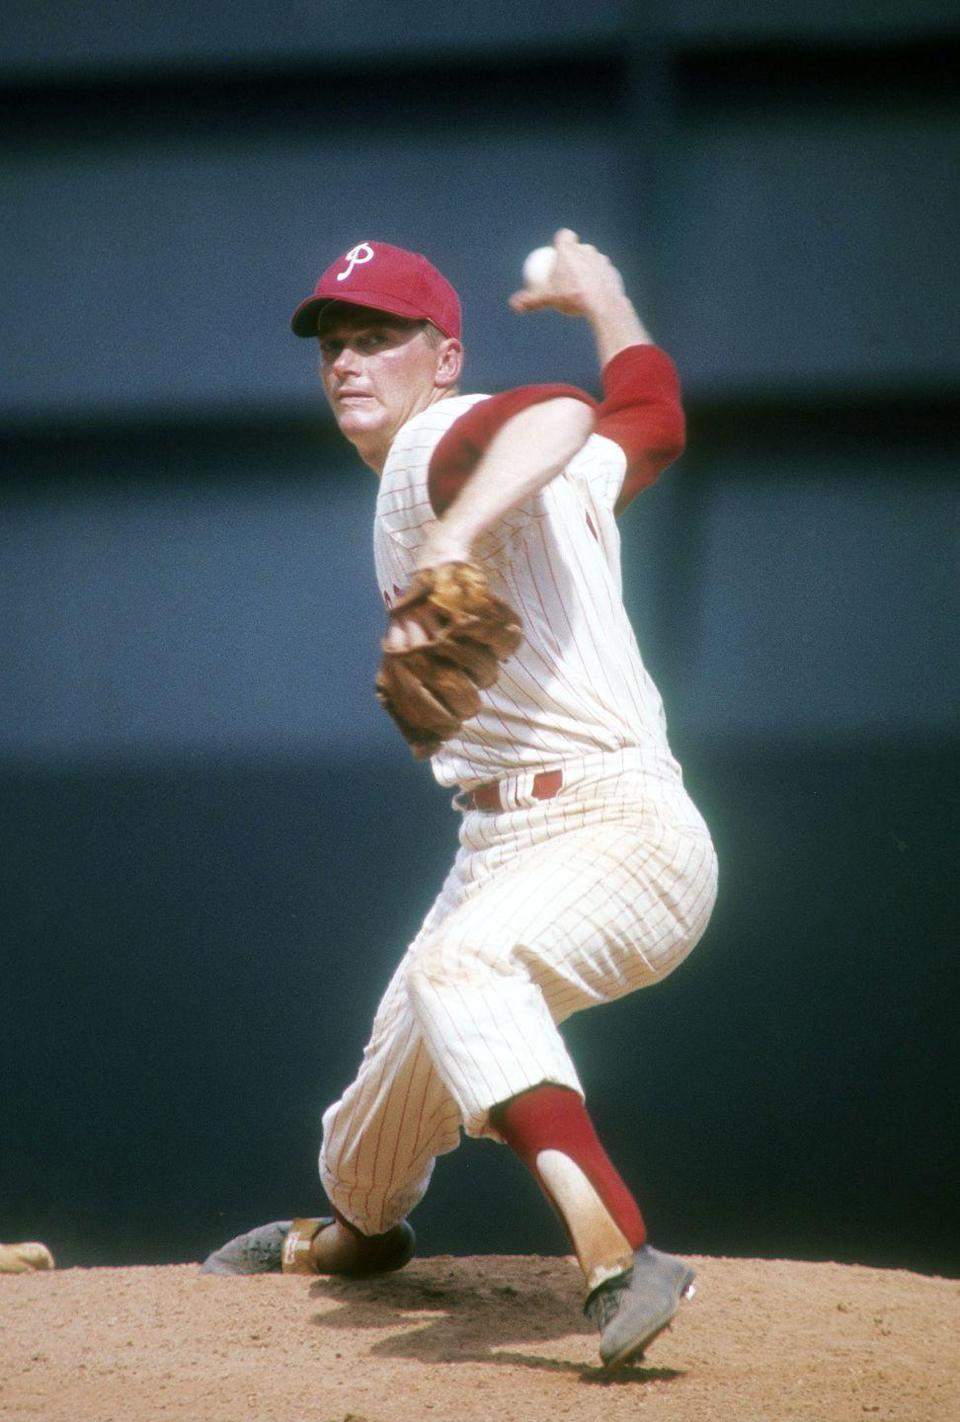 """<p><strong>June 21, 1964</strong>: In the first game of a Father's Day doubleheader at Shea Stadium, Jim Bunning of the National League-leading Phillies pitches a perfect game, defeating the 10th-place New York Mets. It's only the fifth perfect game in baseball history, and the ace right-hander needs just 90 pitches to complete the game. With the 27-up, 27-down victory, Bunning becomes the first player to hurl a no-hitter in both leagues. (He also blanked the Red Sox in 1958 while pitching for the Detroit Tigers.) """"What a day for the daddy of seven children who experienced a career game that Father's Day,"""" says Frommer.<br> </p>"""